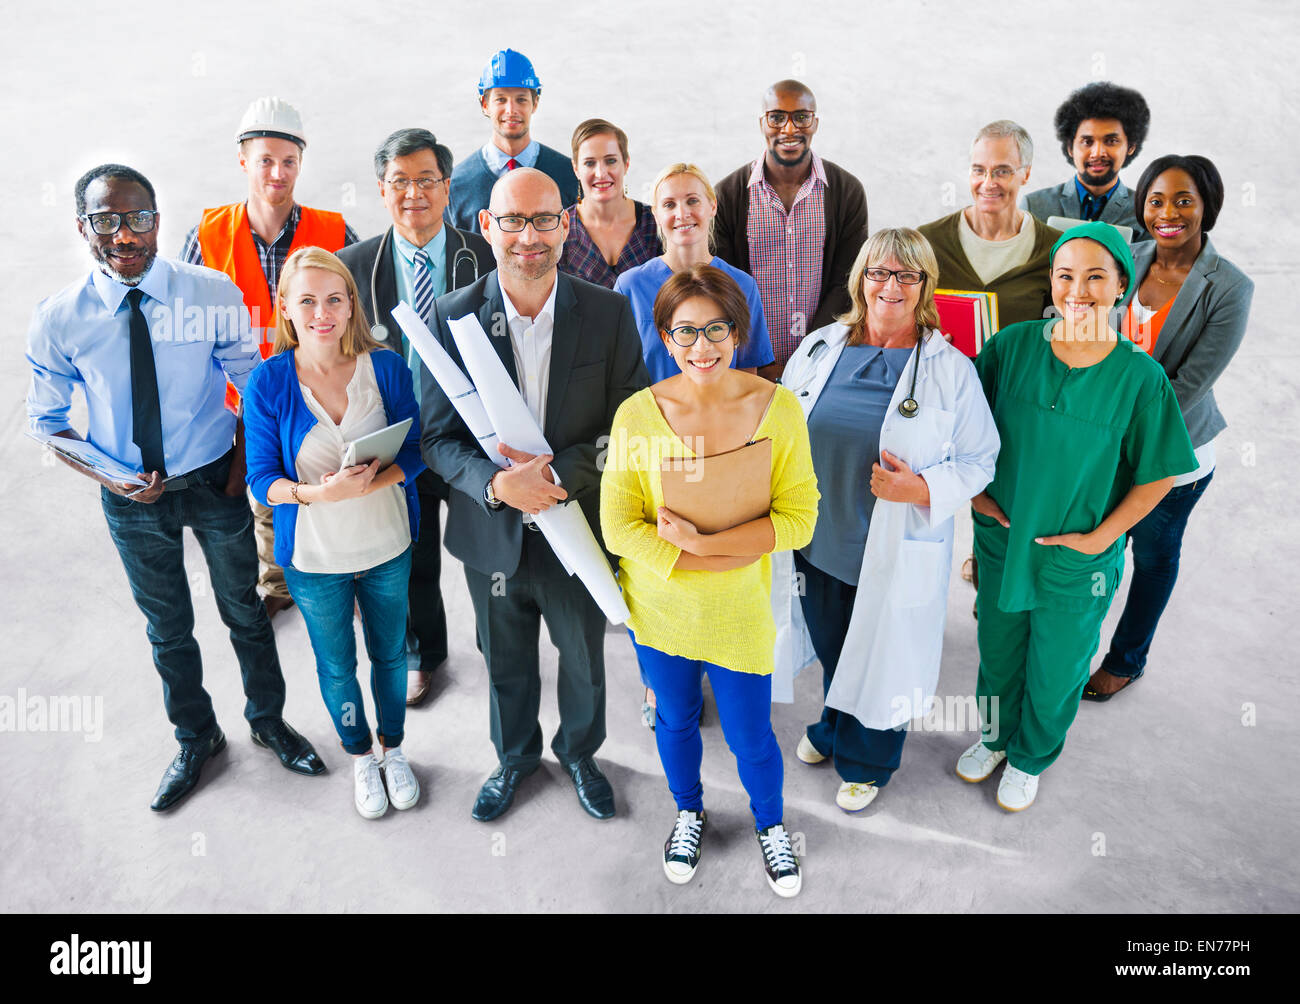 Diverse Multiethnic People with Different Jobs - Stock Image